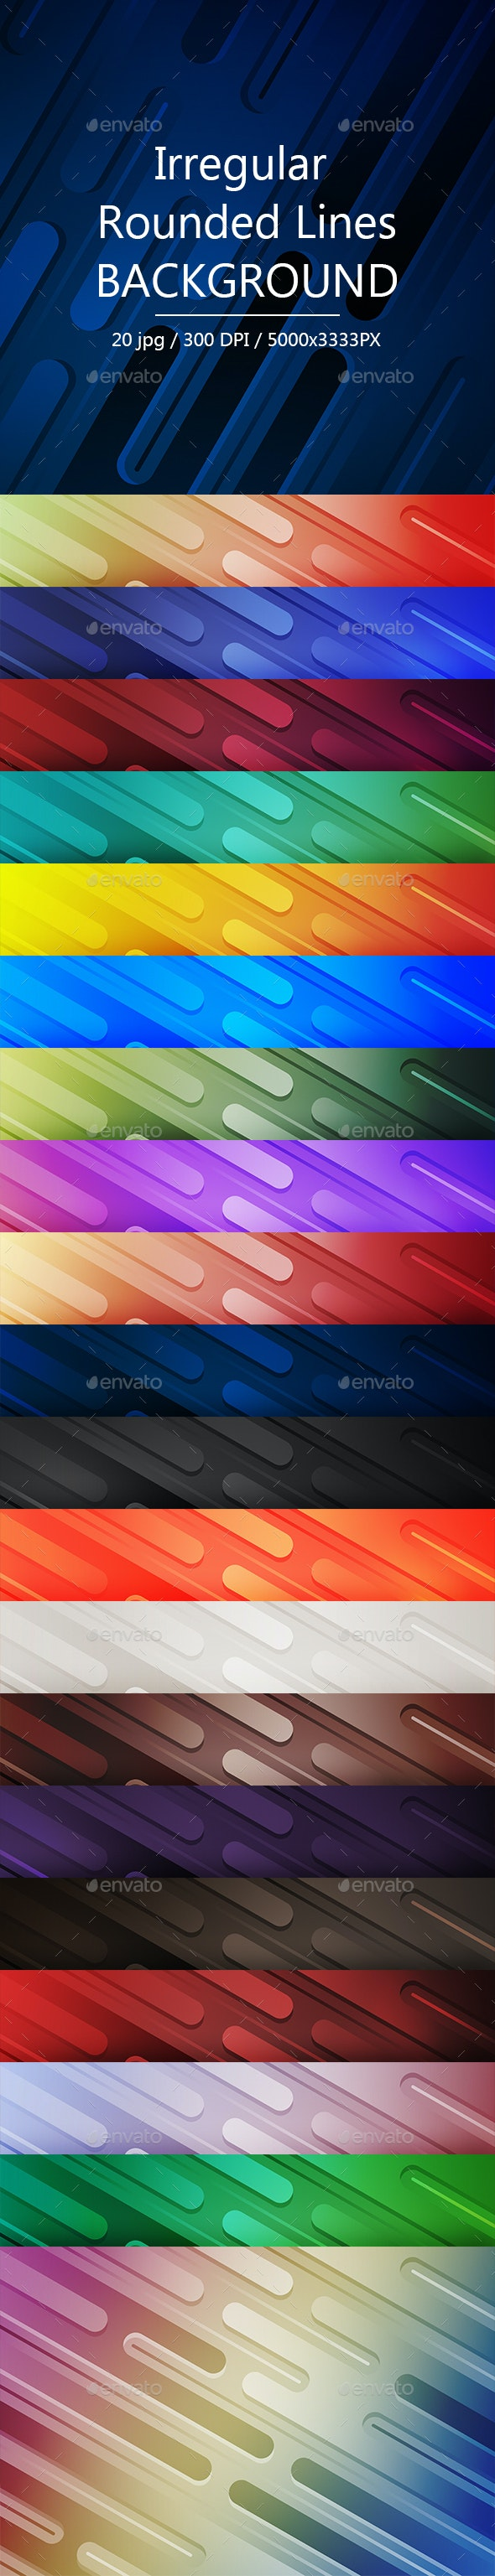 Irregular Rounded Lines Backgrounds - Abstract Backgrounds